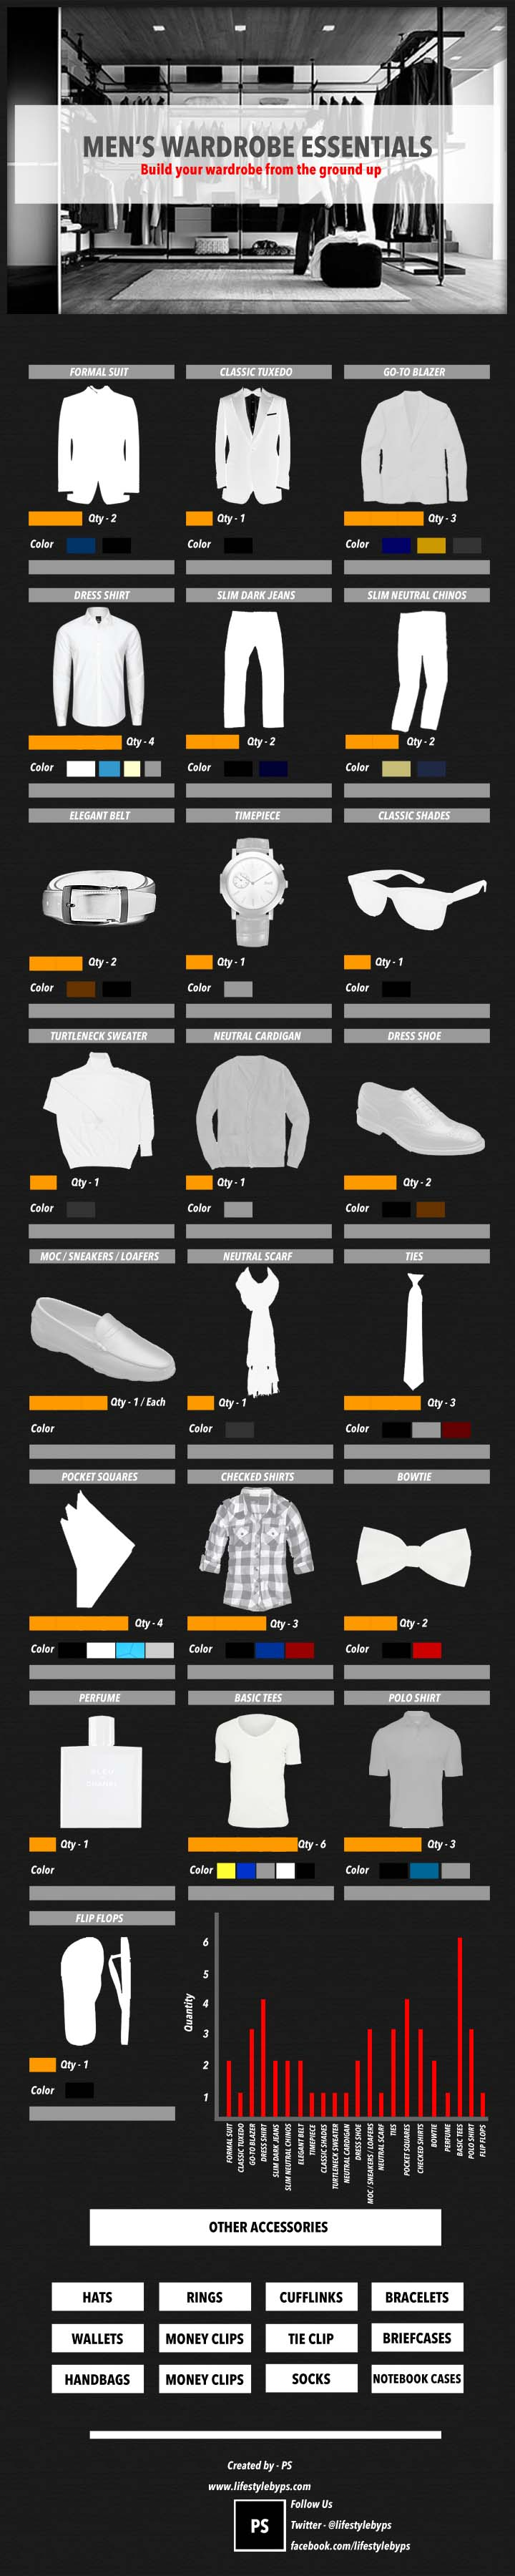 Mens_Wardrobe_Essentials